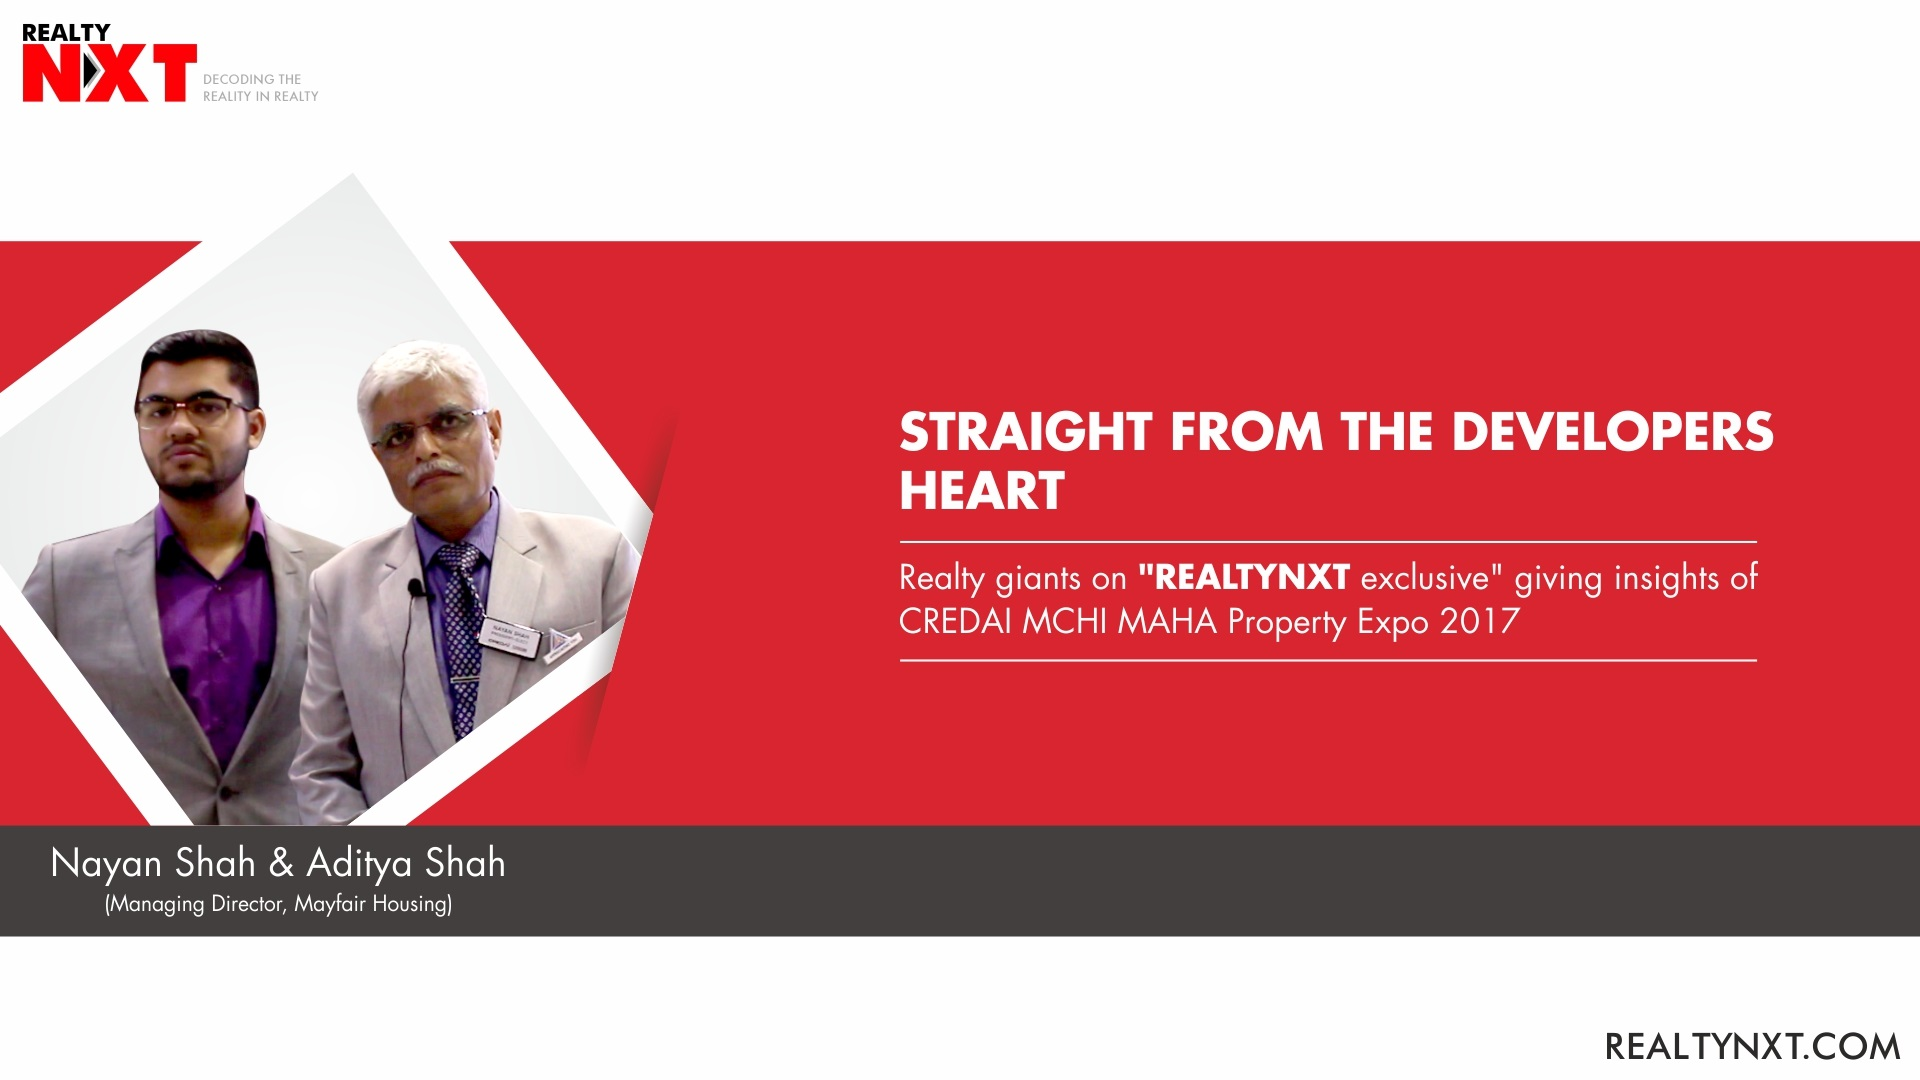 Realty Nxt Interviews Mayfair Housing, MD Mr. Nayan Shah And Aditya Shah at CREDAI MCHI